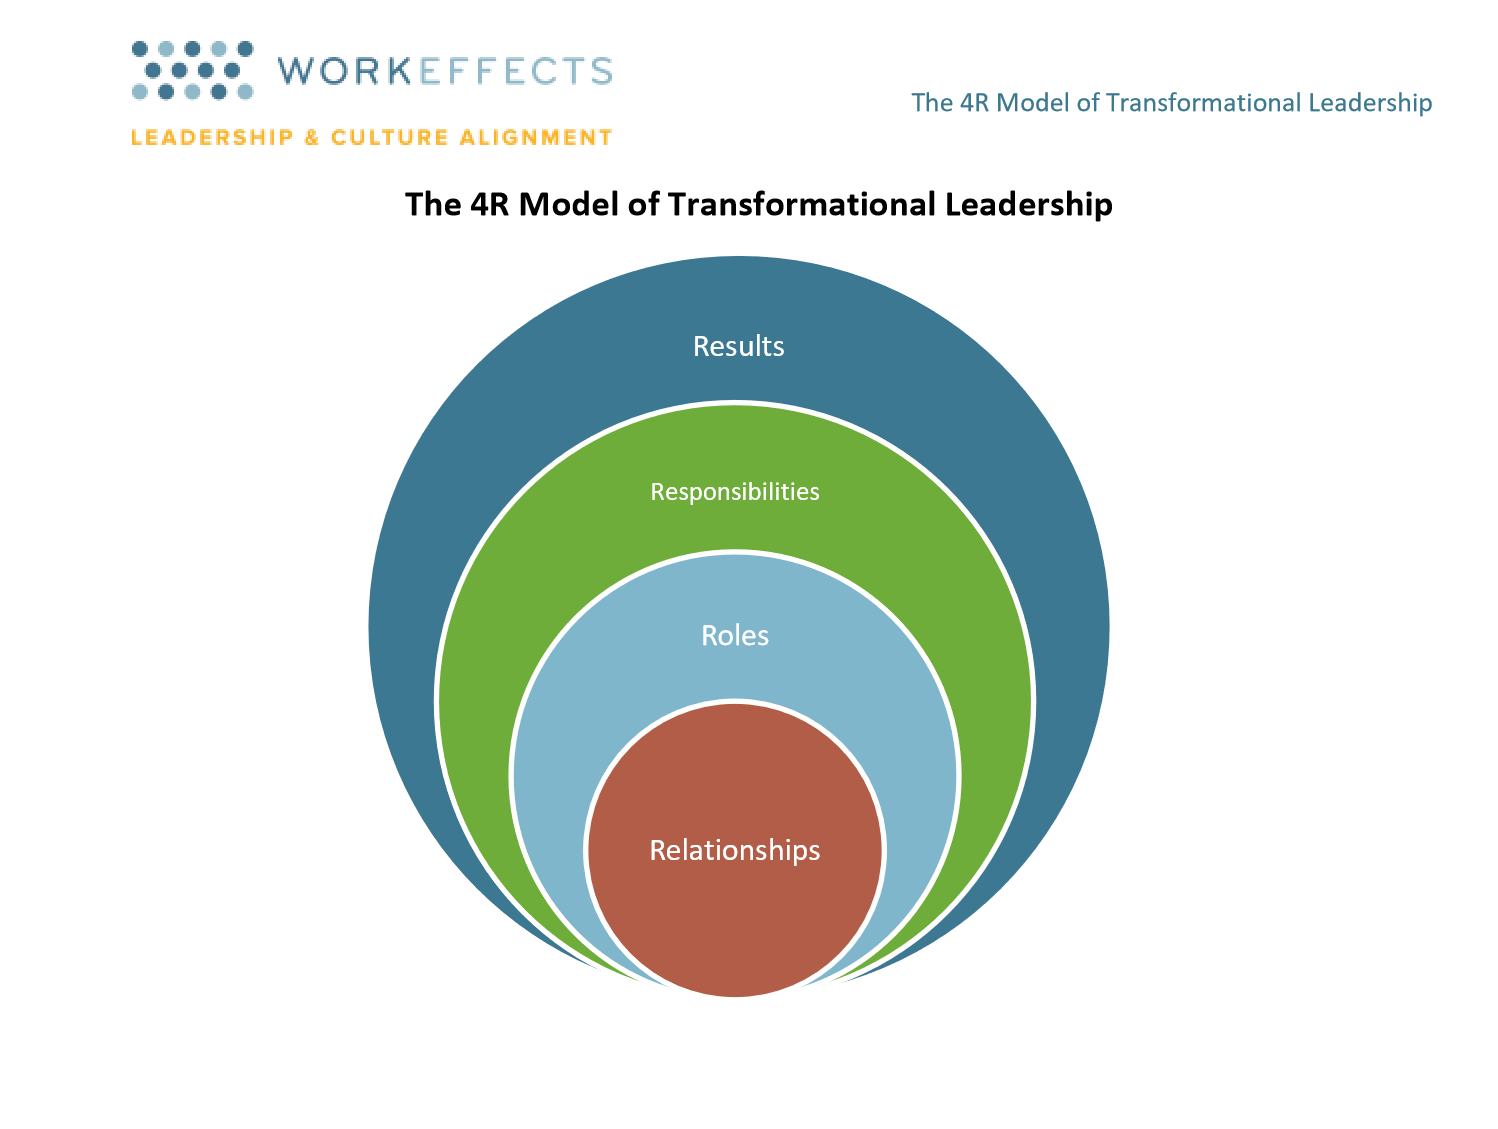 4R Model of Transformational Leadership